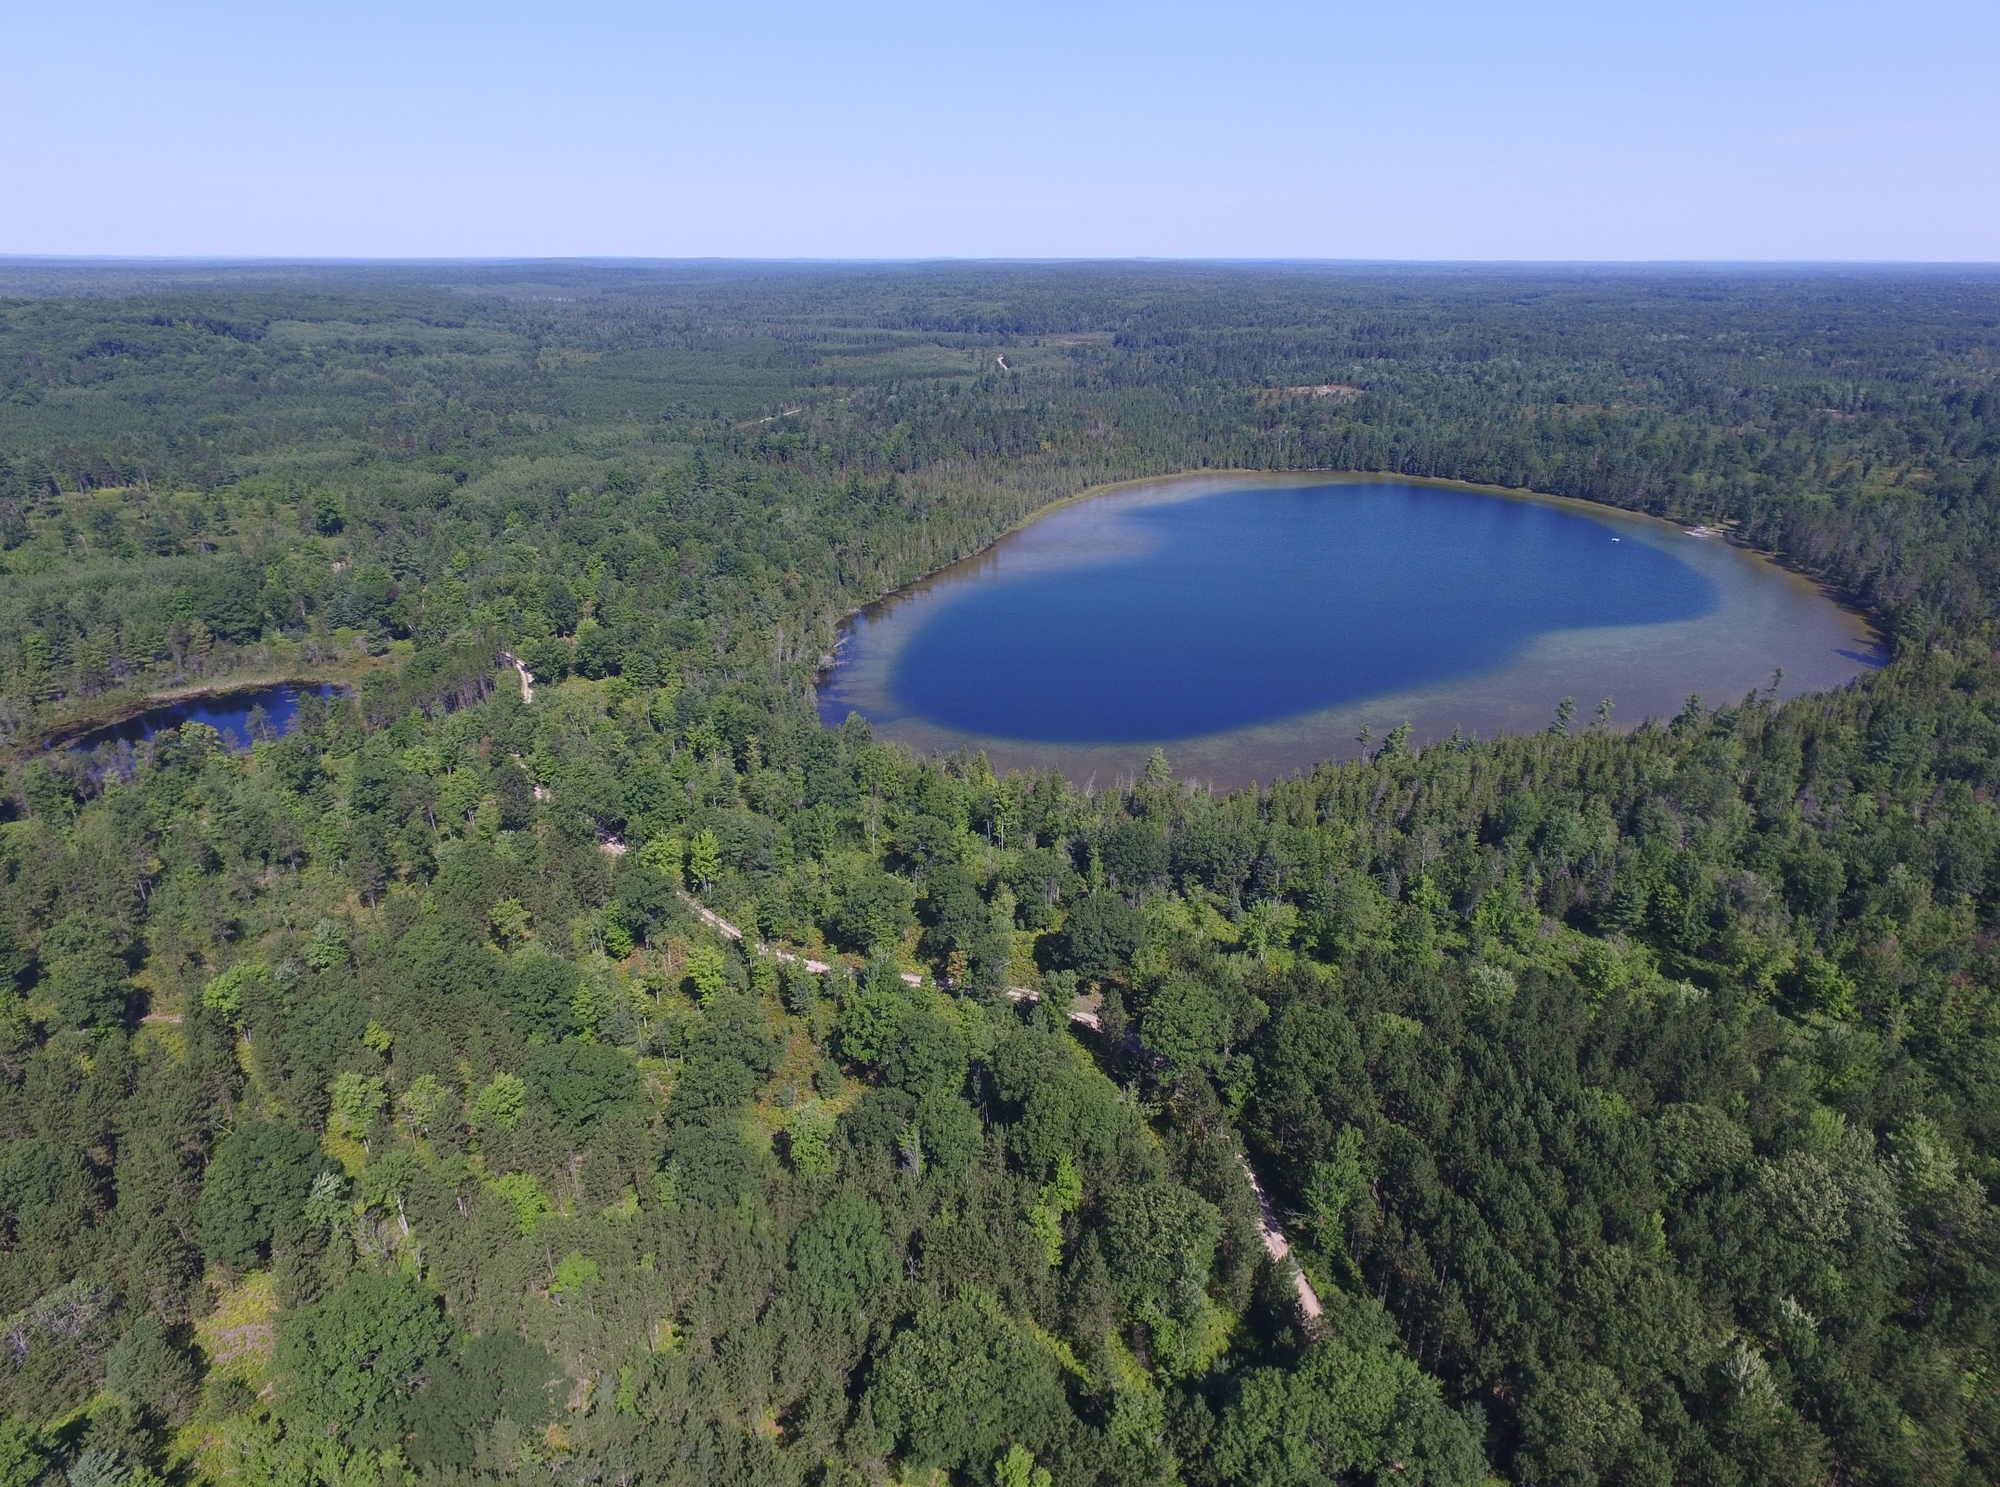 An aerial view of the Elk Forest at Black River project shows Walled Lake and a smaller pond located on the forested property.